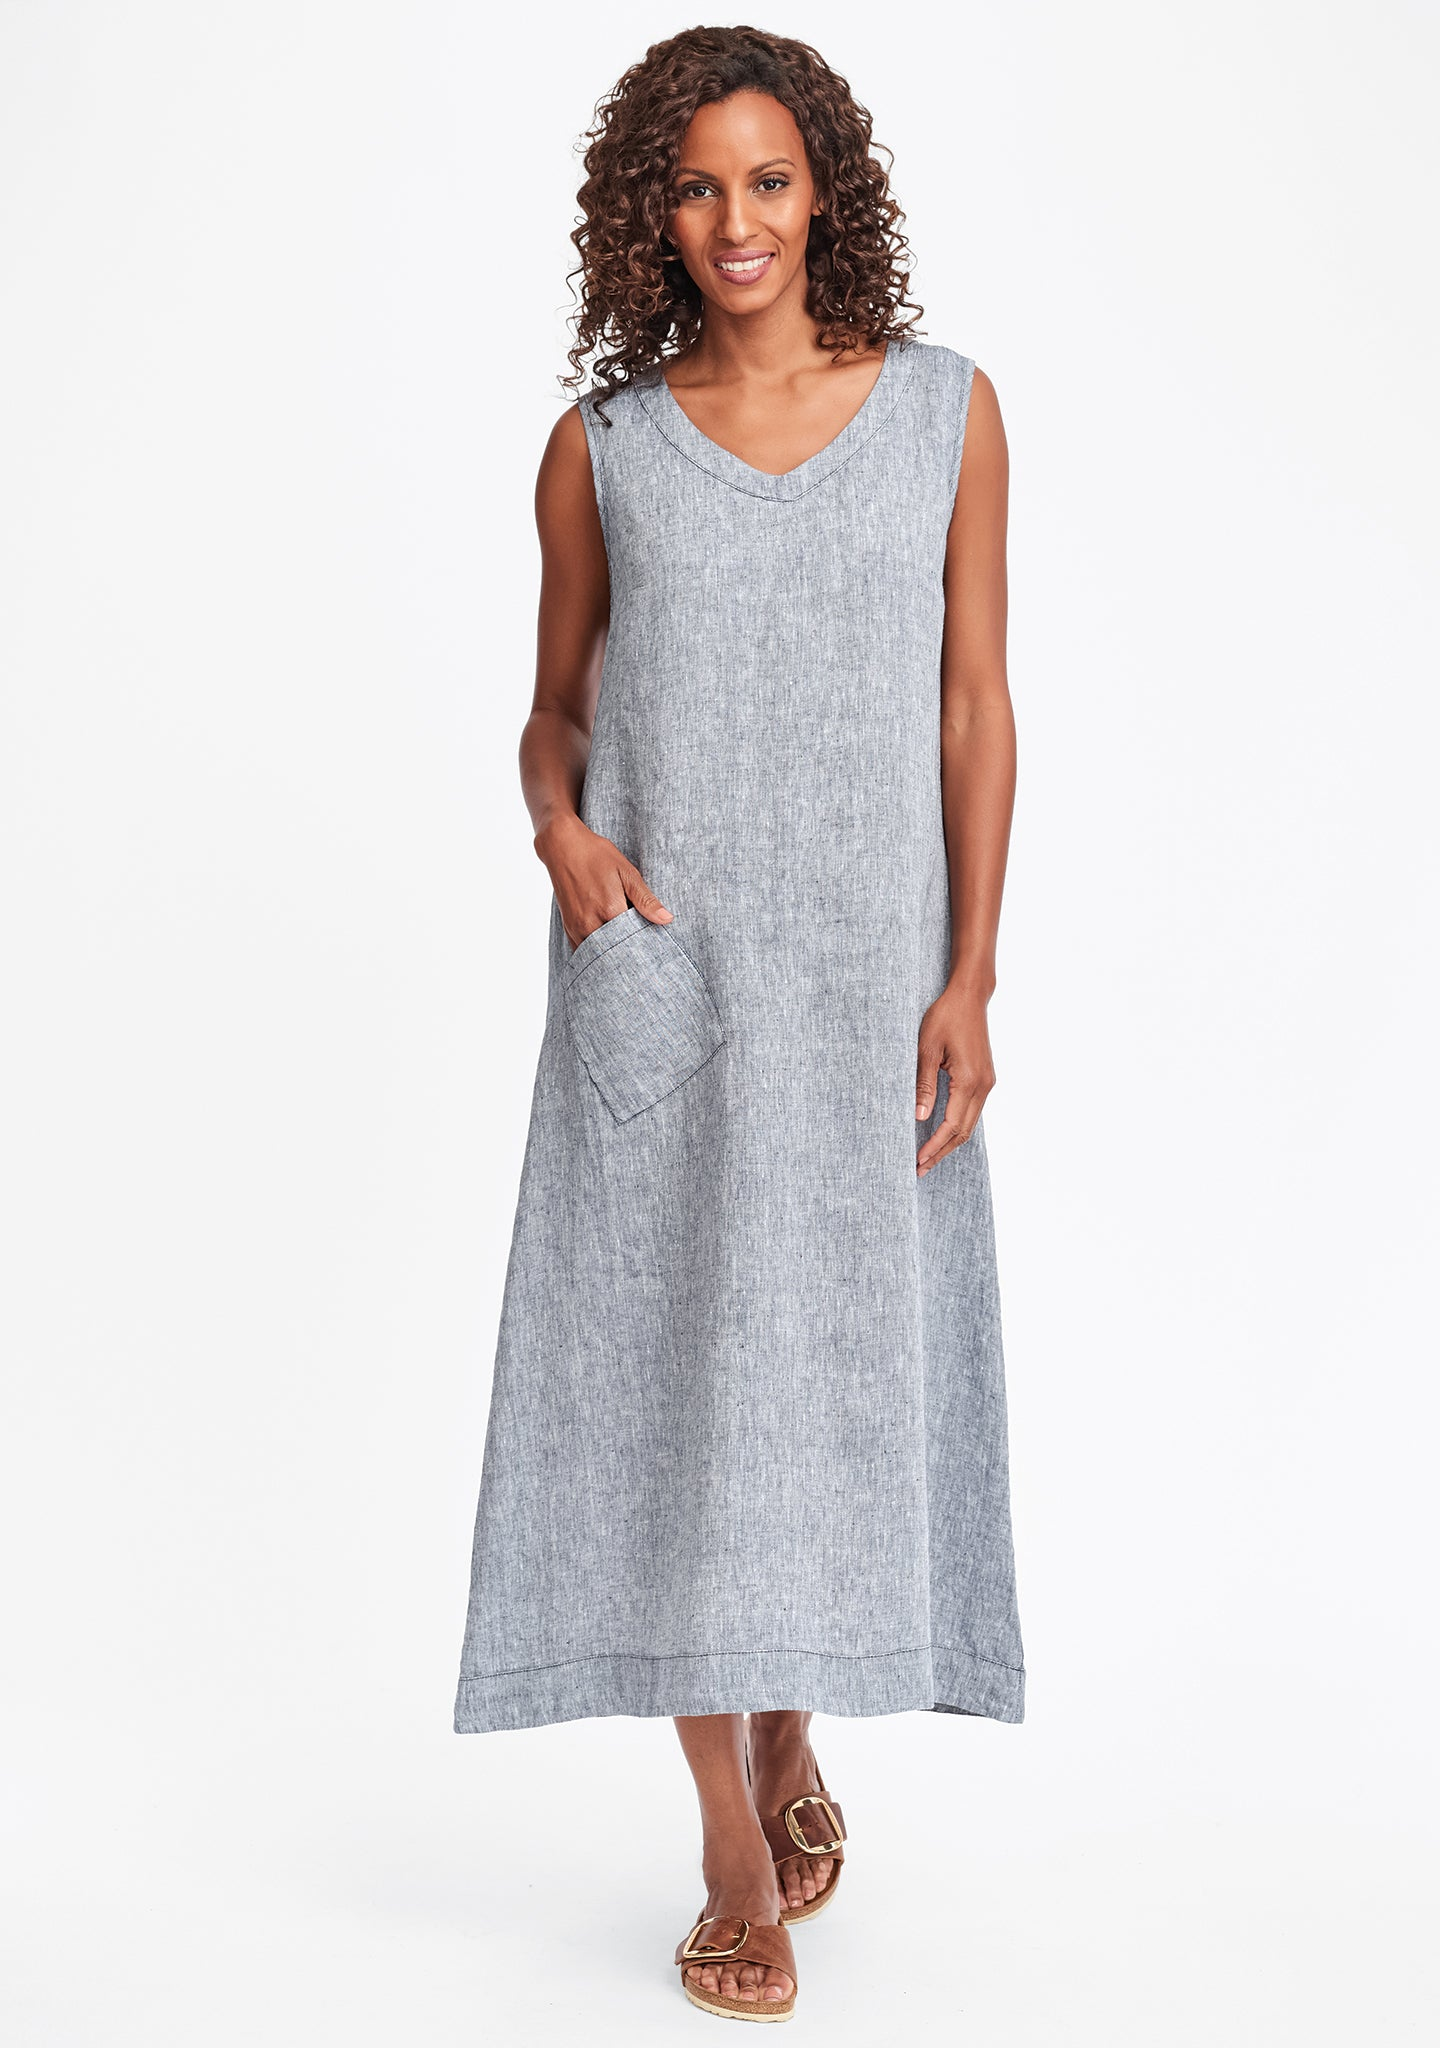 serenity now linen maxi dress blue